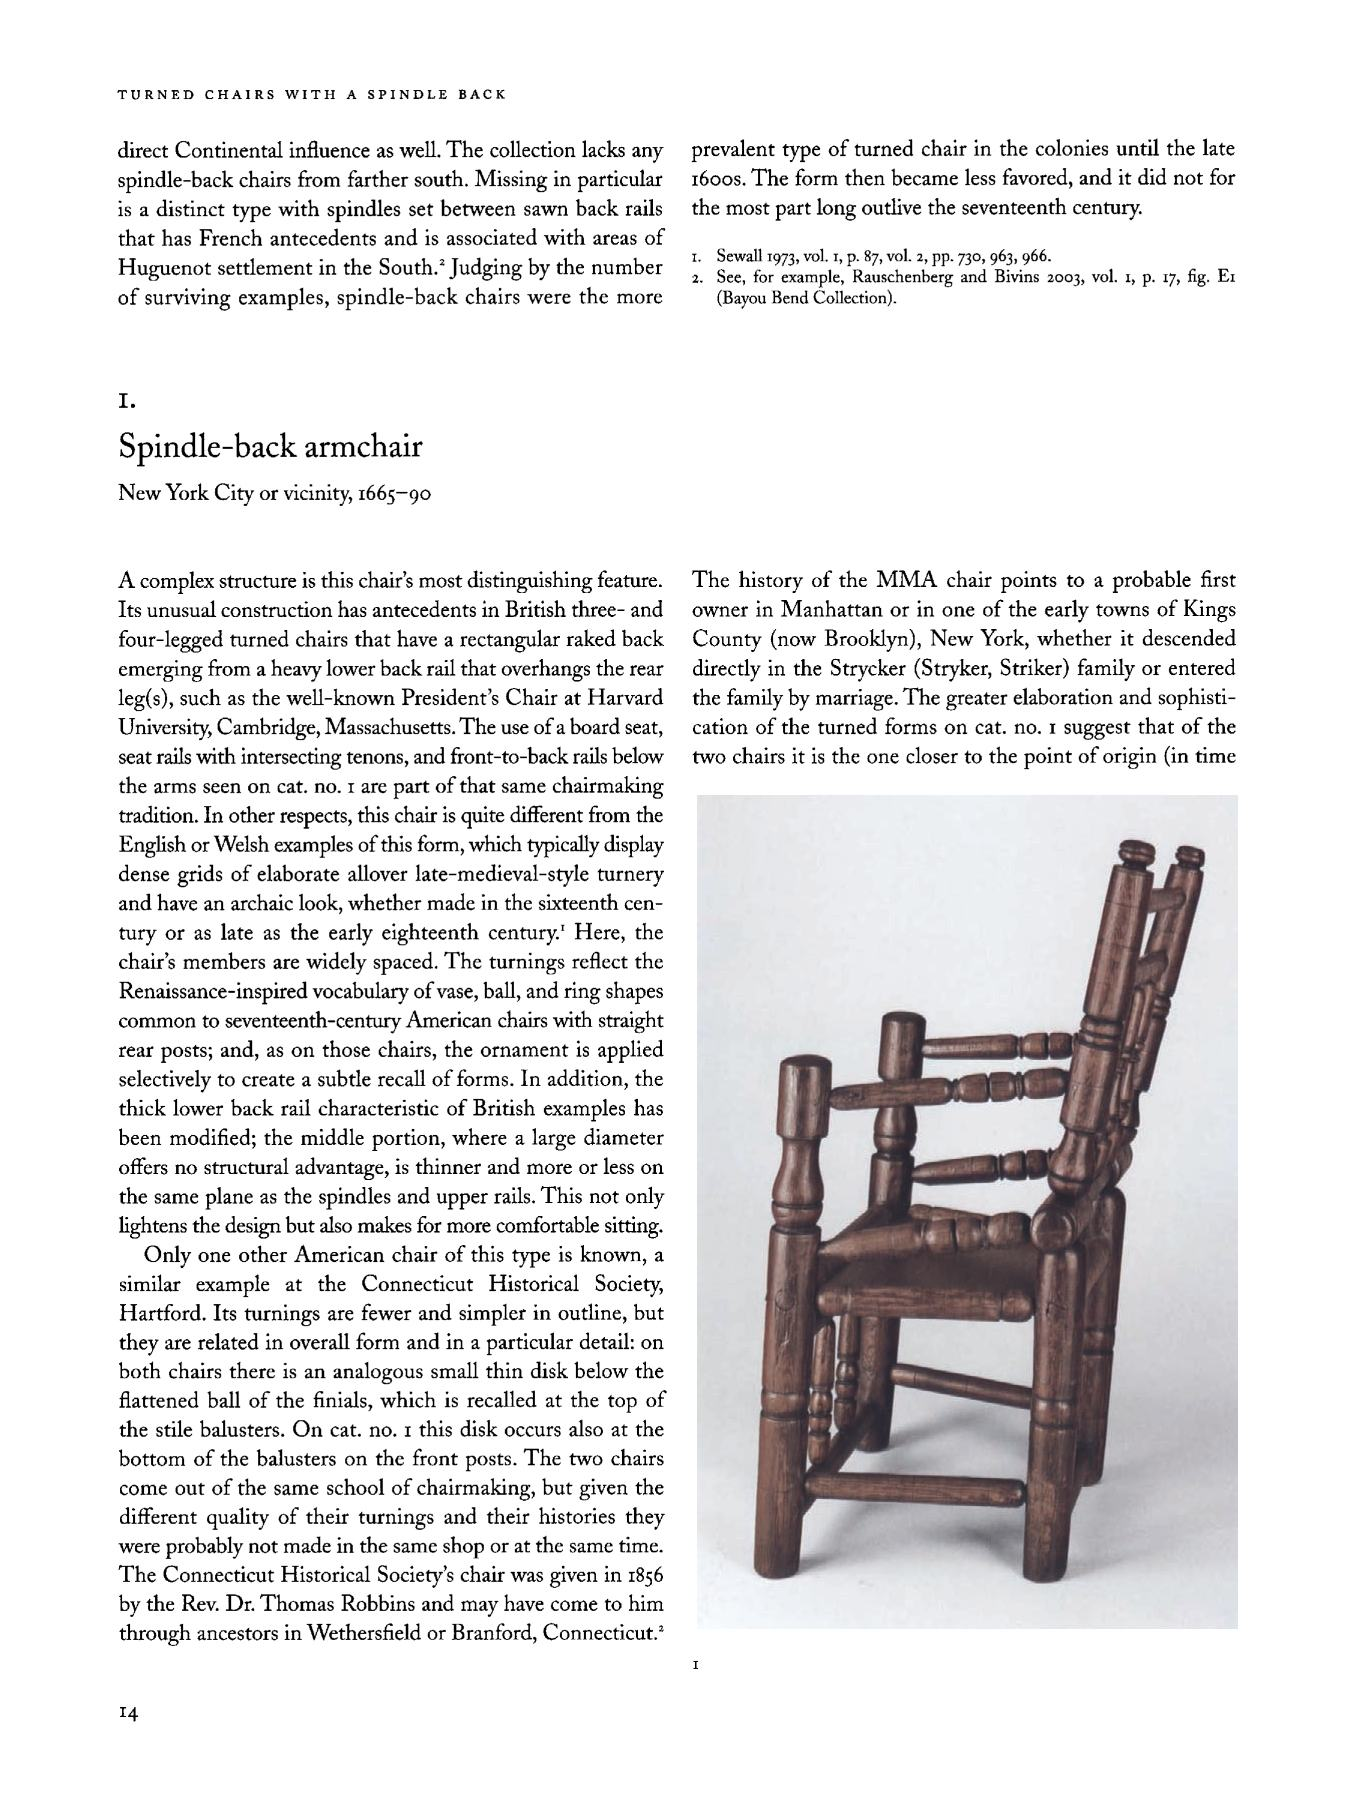 American Furniture in The Metropolitan Museum of Art : Vol. I. Early Colonial Period: The Seventeenth-Century and William and Mary Styles / Frances Gruber Safford